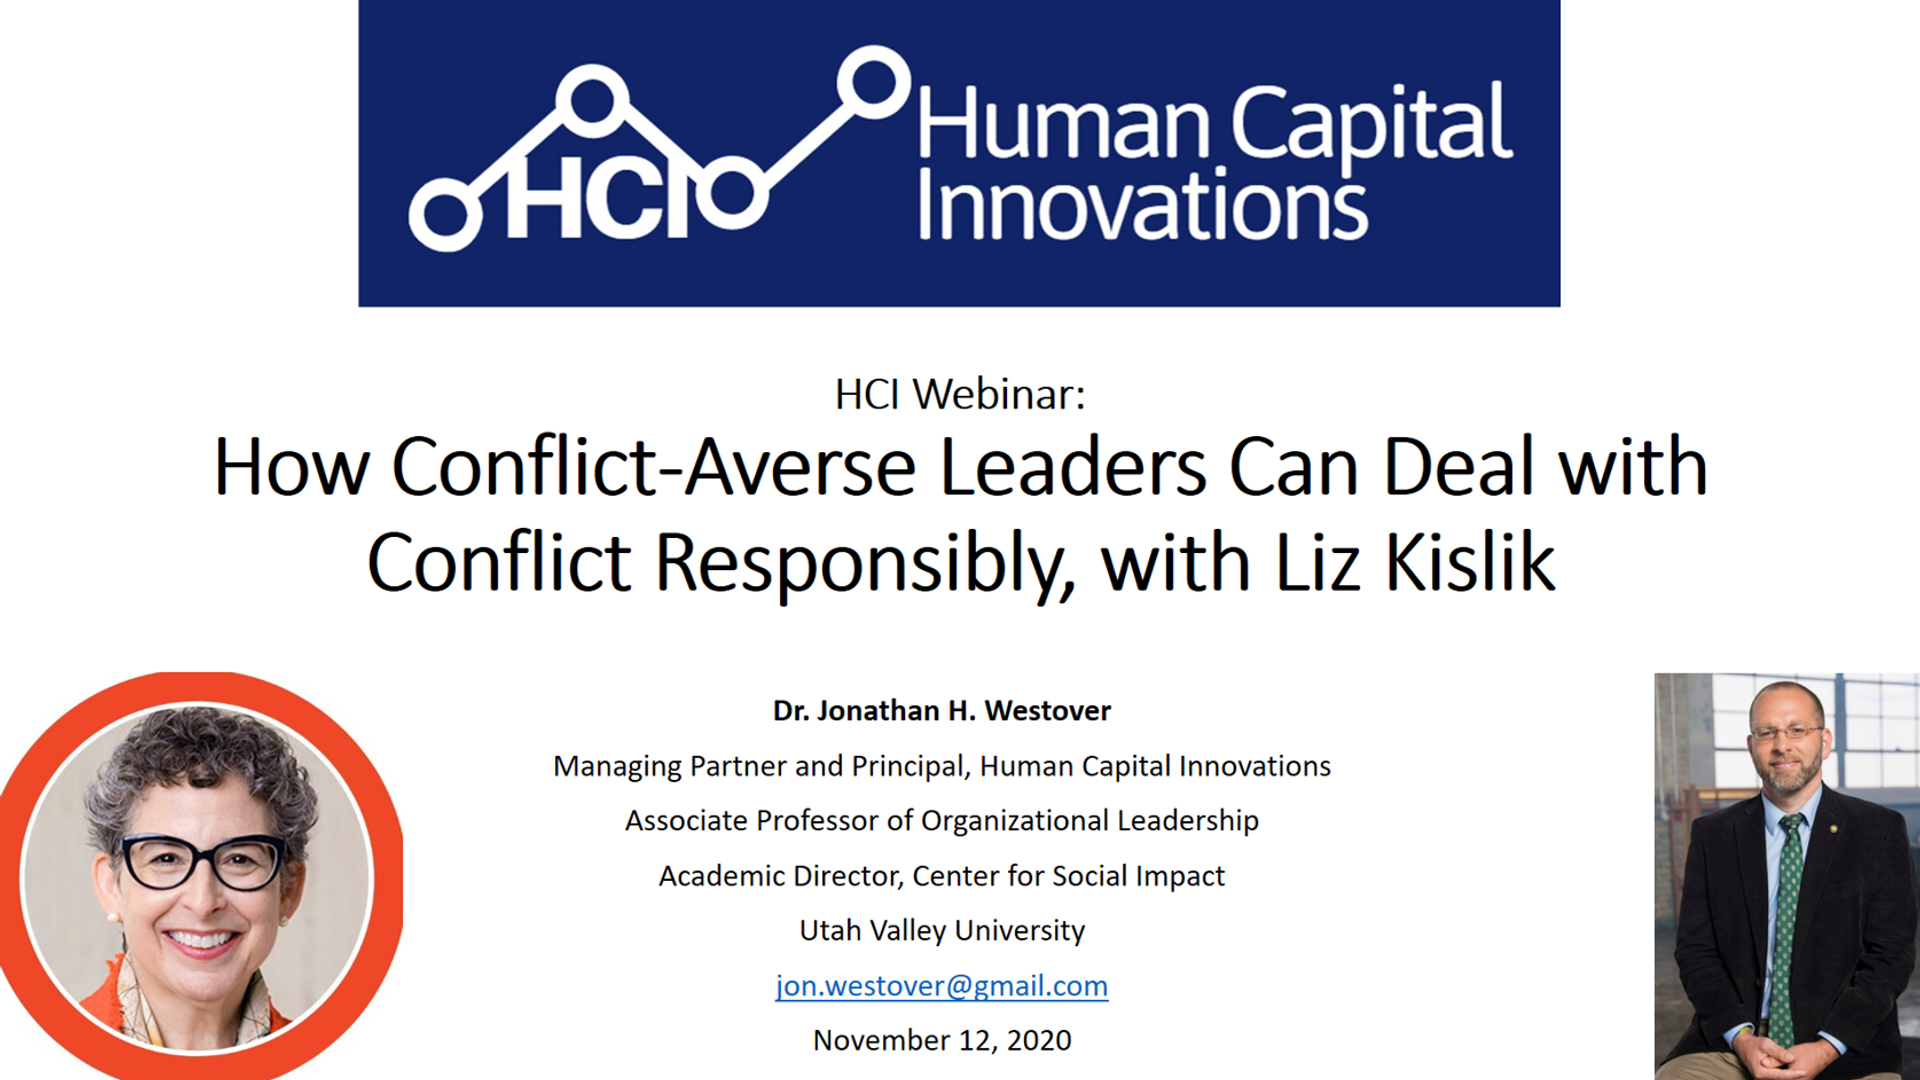 How Conflict-Averse Leaders Can Deal with Conflict Responsibly